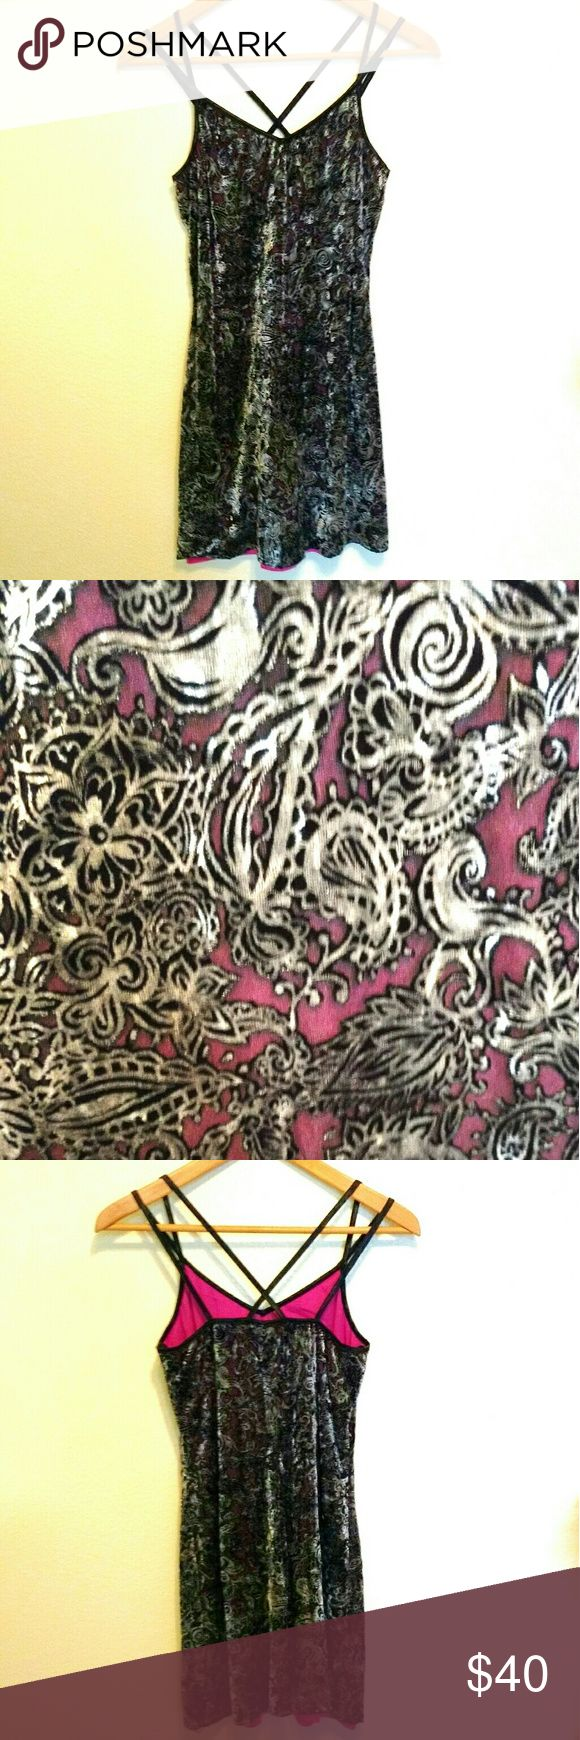 Vintage 90s Burnout Velvet Dress Purchased in 1997-- I am the original owner! Dress with crisscross spaghetti straps in silver and black paisley burnout velvet with bright pink lining. The lining subtly shows through the burnout parts of the velvet and the effect is amazing! (See detail photos) Excellent condition as I take very good care of my clothes. Vintage Dresses